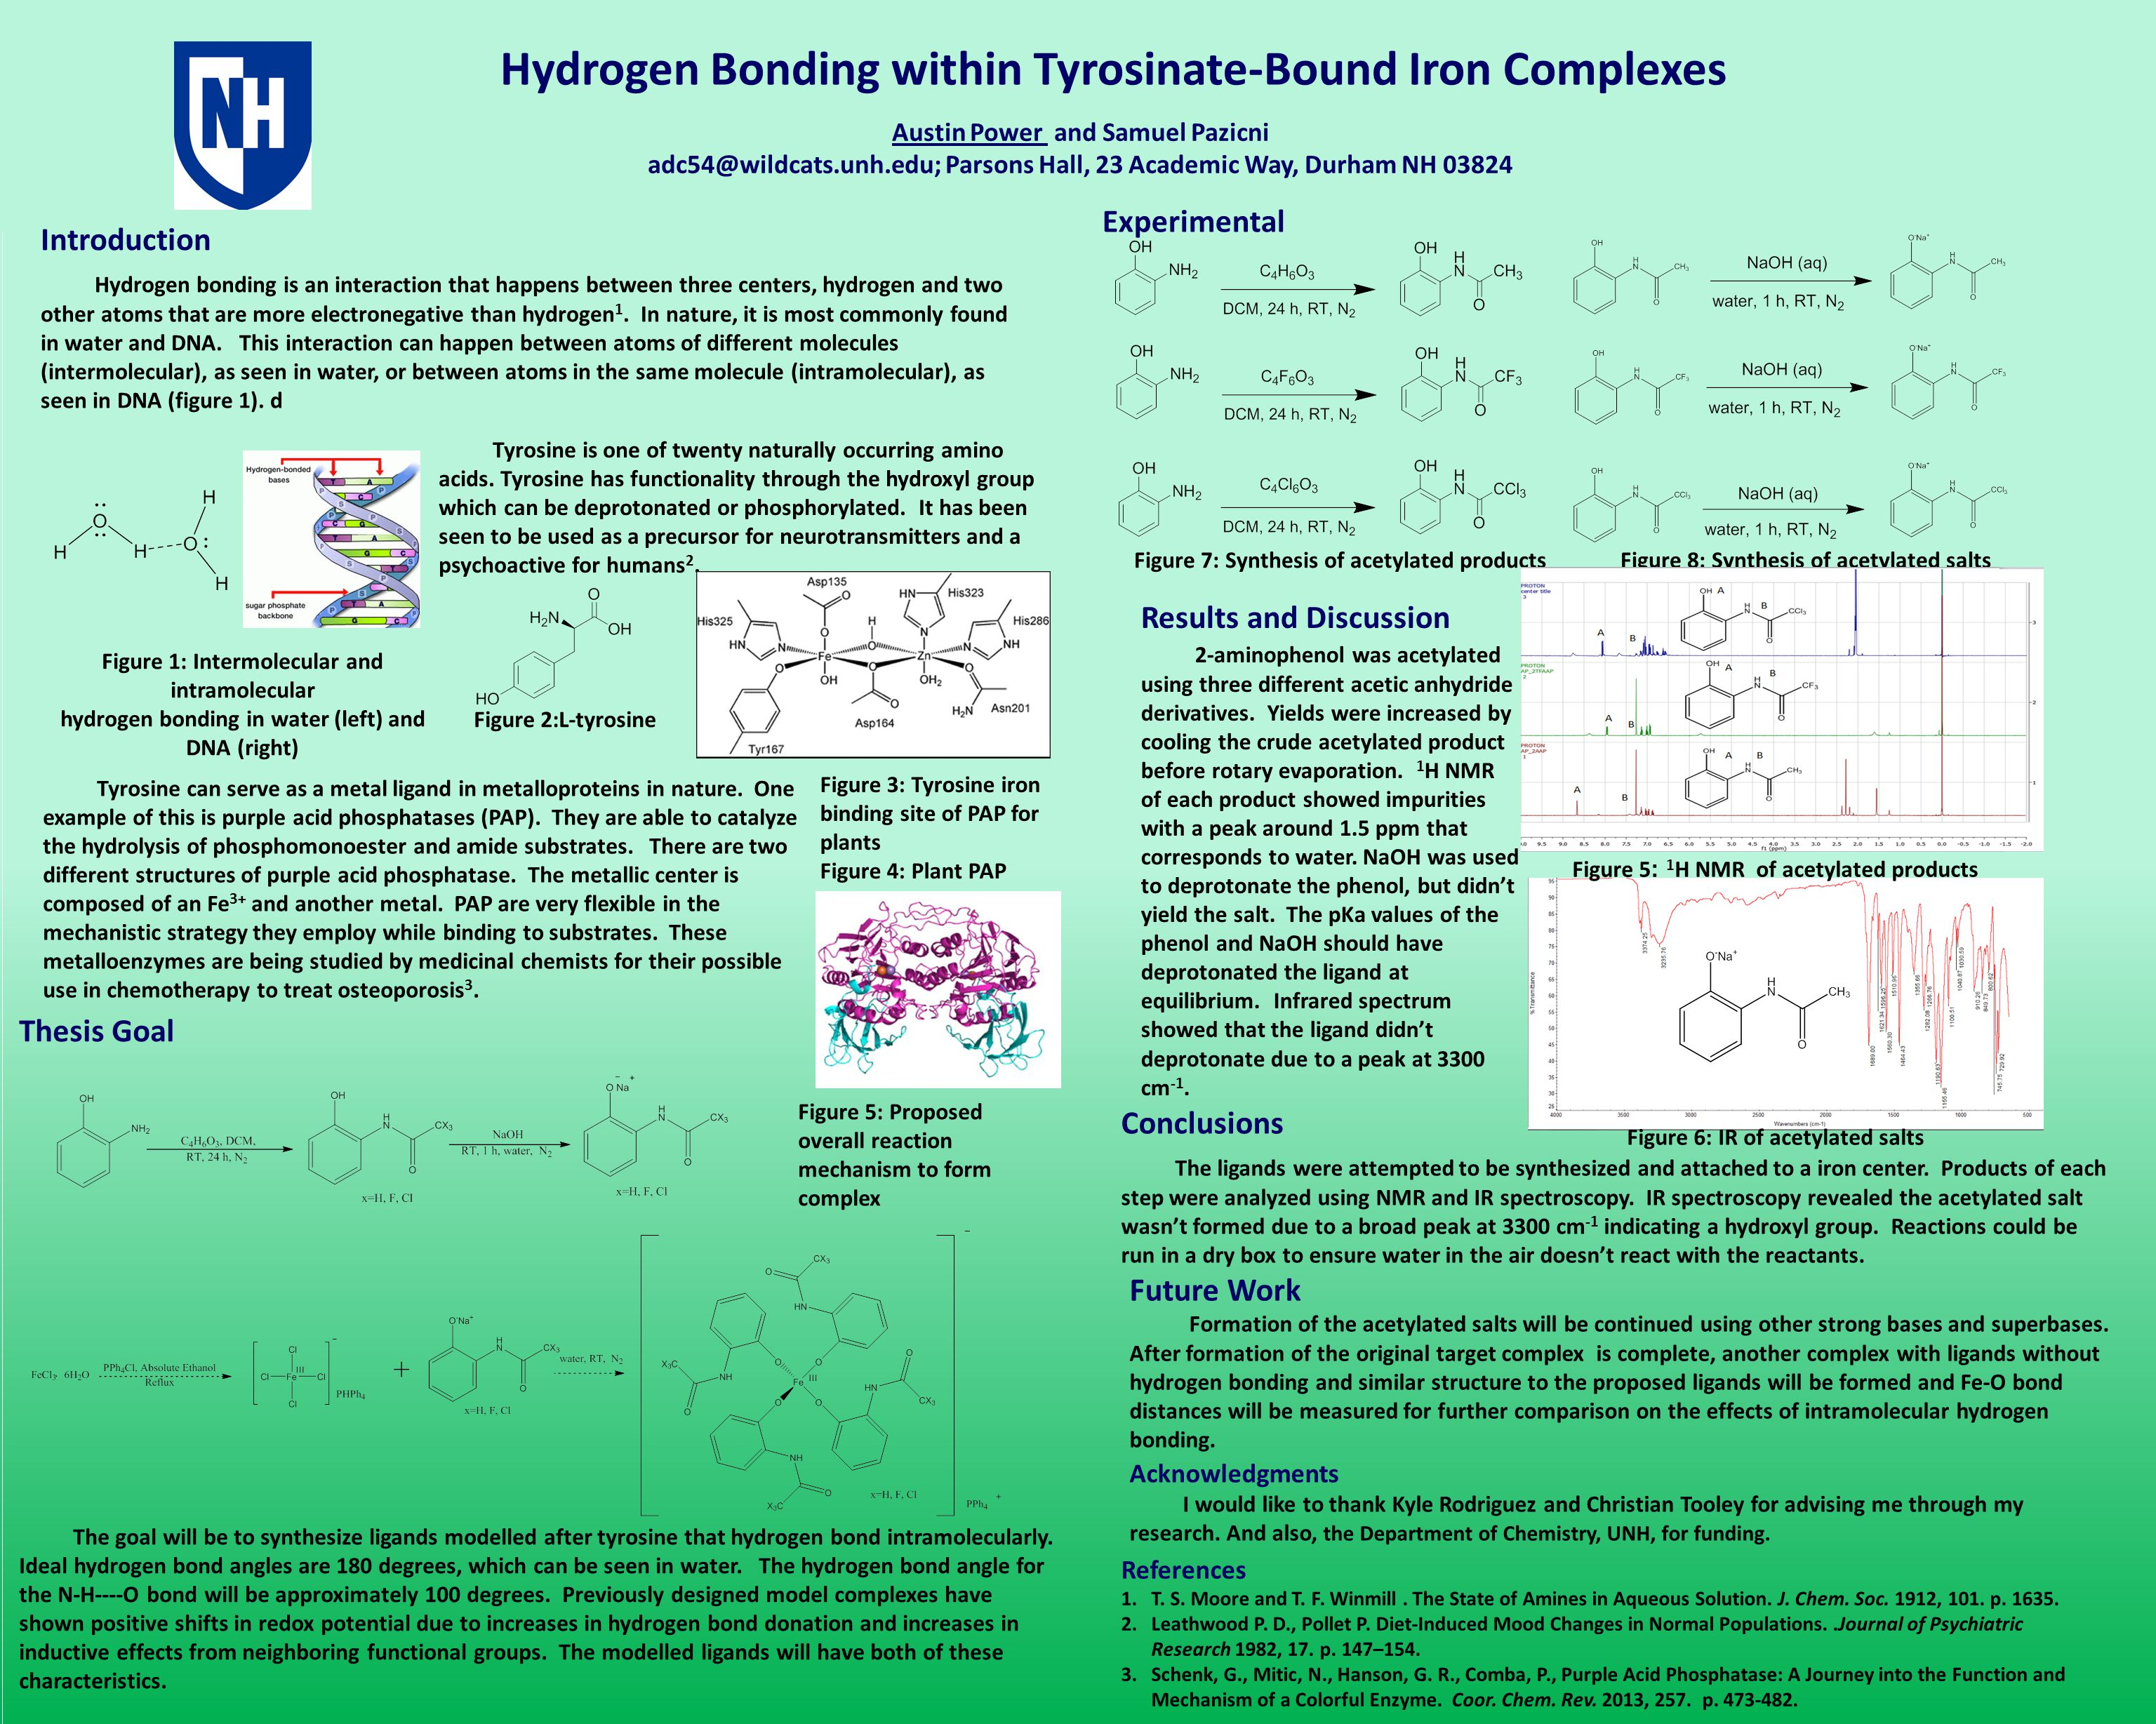 Hydrogen Bonding within Tyrosinate-Bound Iron Complexes Acknowledgments I would like to thank Kyle Rodriguez and Christian Tooley for advising me through my research.